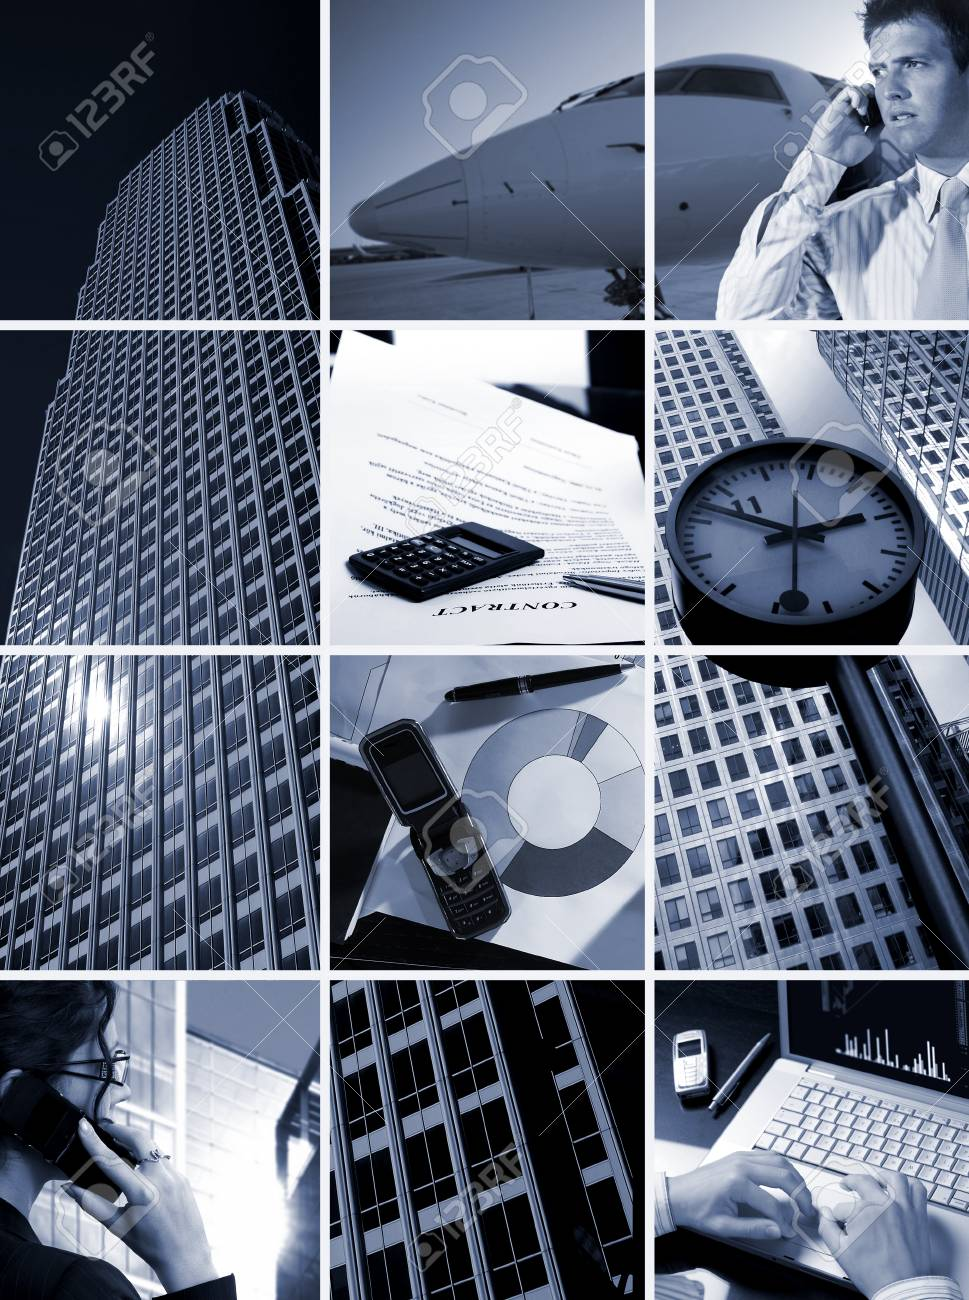 Conceptual image-grid of business photos: 'Time is Money' Stock Photo - 1422656